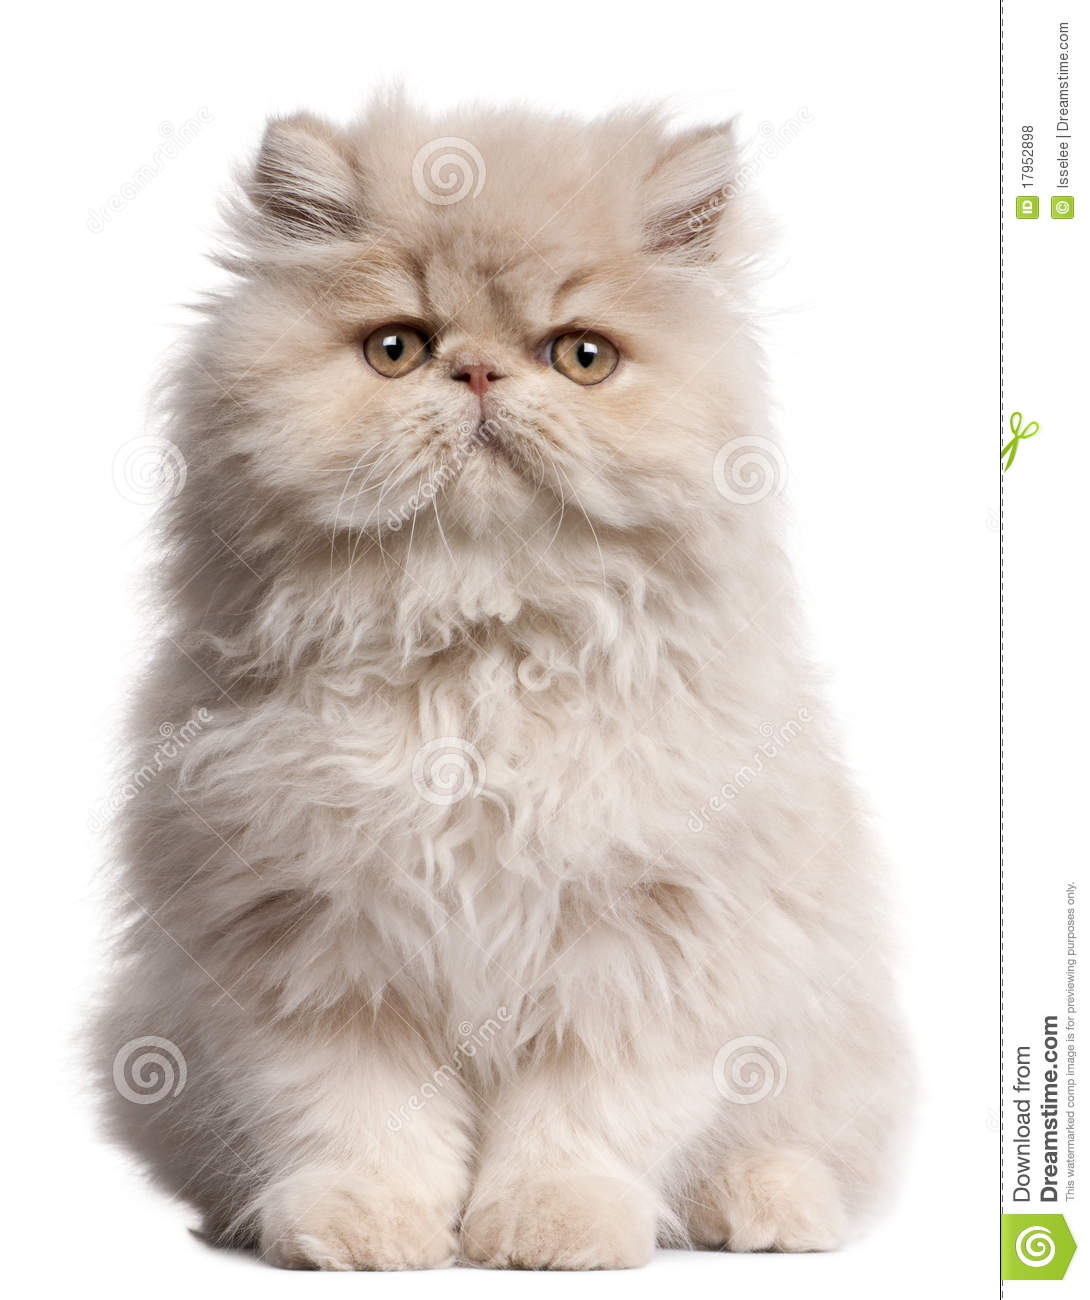 Young Persian Cat Sitting Royalty Free Stock Photos - Image: 17952898